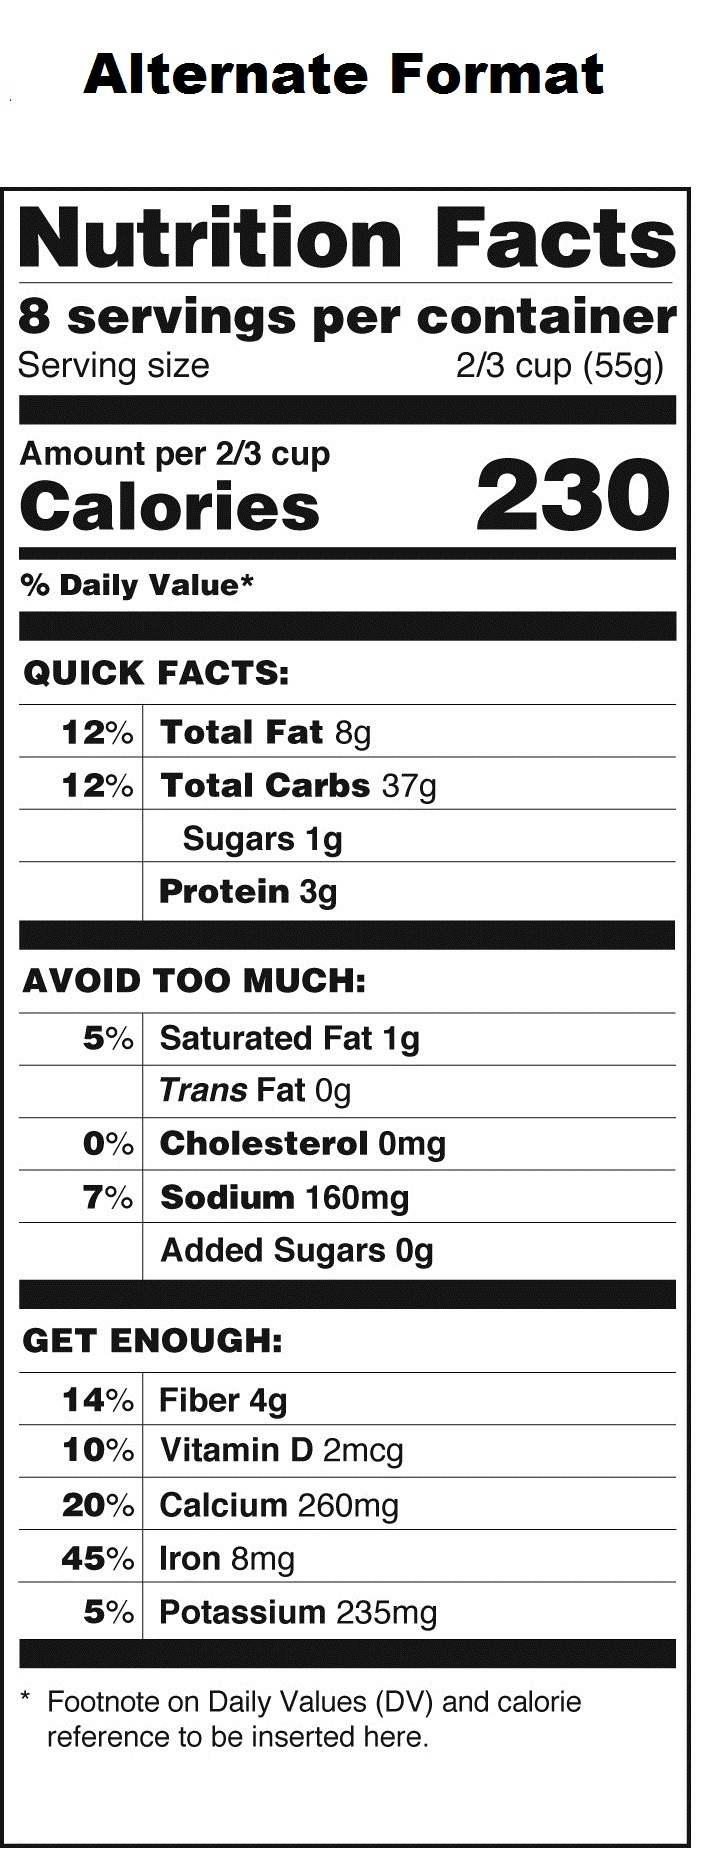 How the Redesigned Nutrition Facts Label Can Change the Way ...